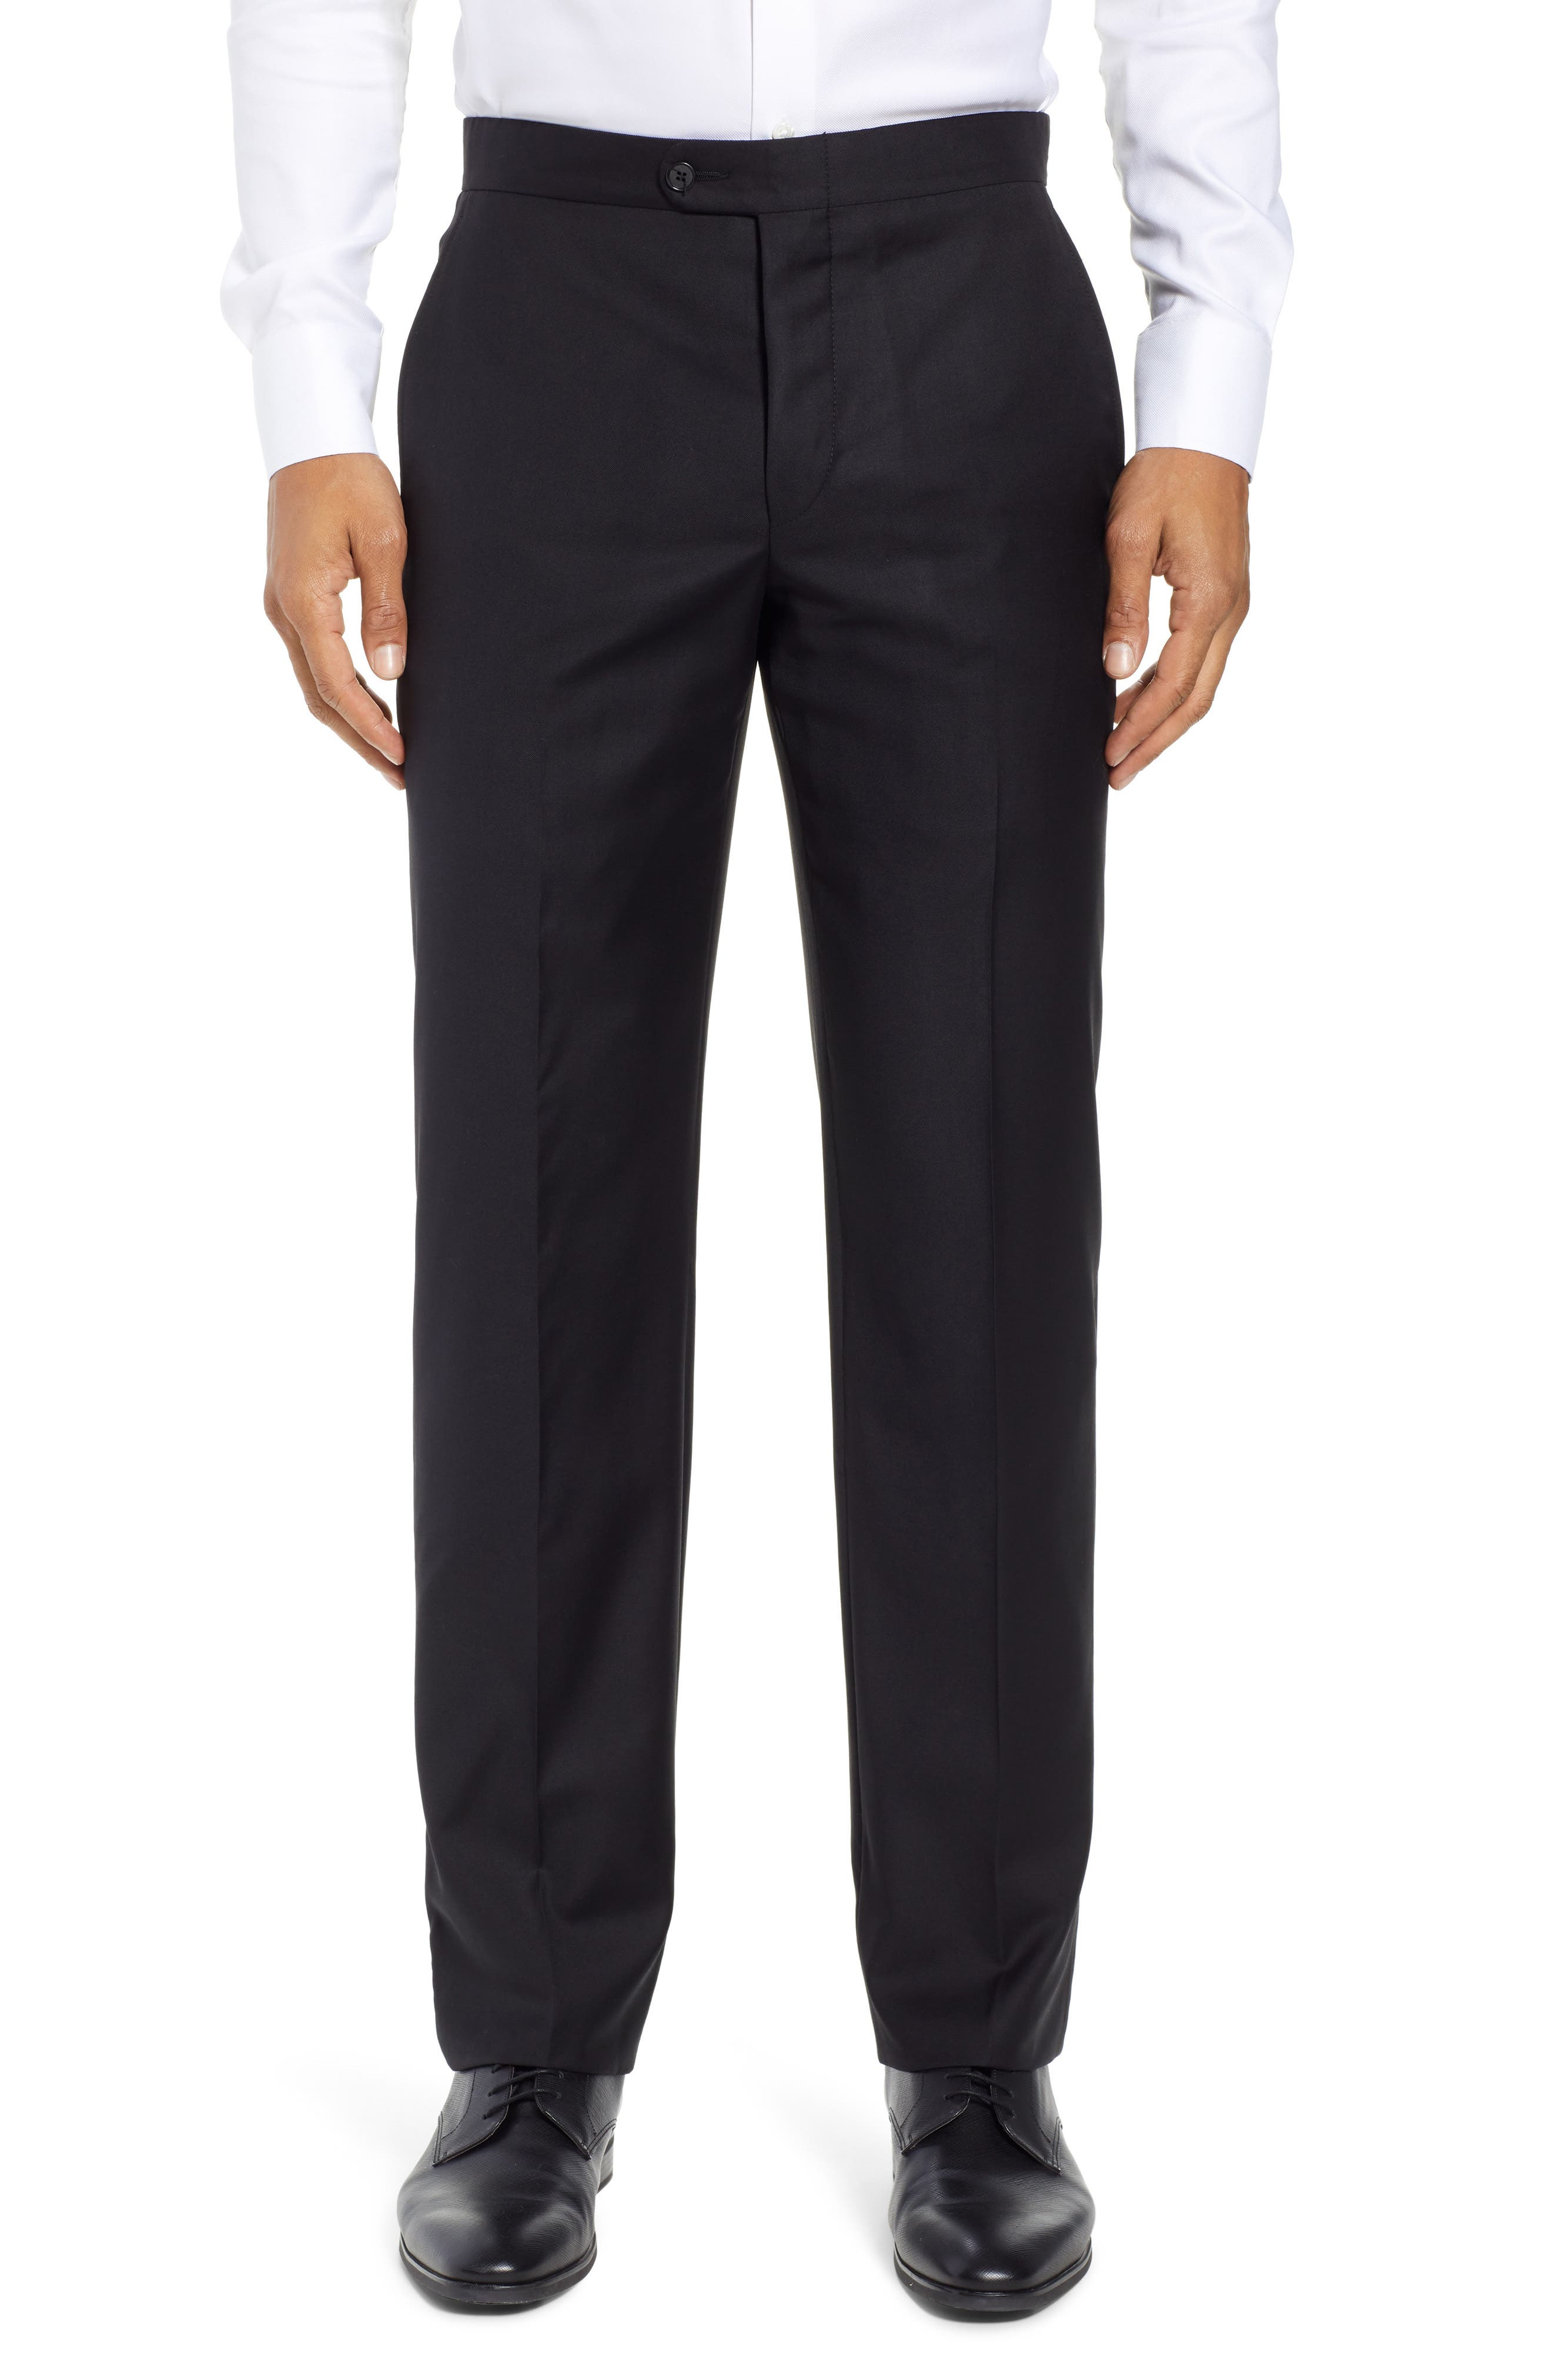 Classic B Fit Flat Front Solid Wool Trousers,                             Main thumbnail 1, color,                             BLACK SOLID